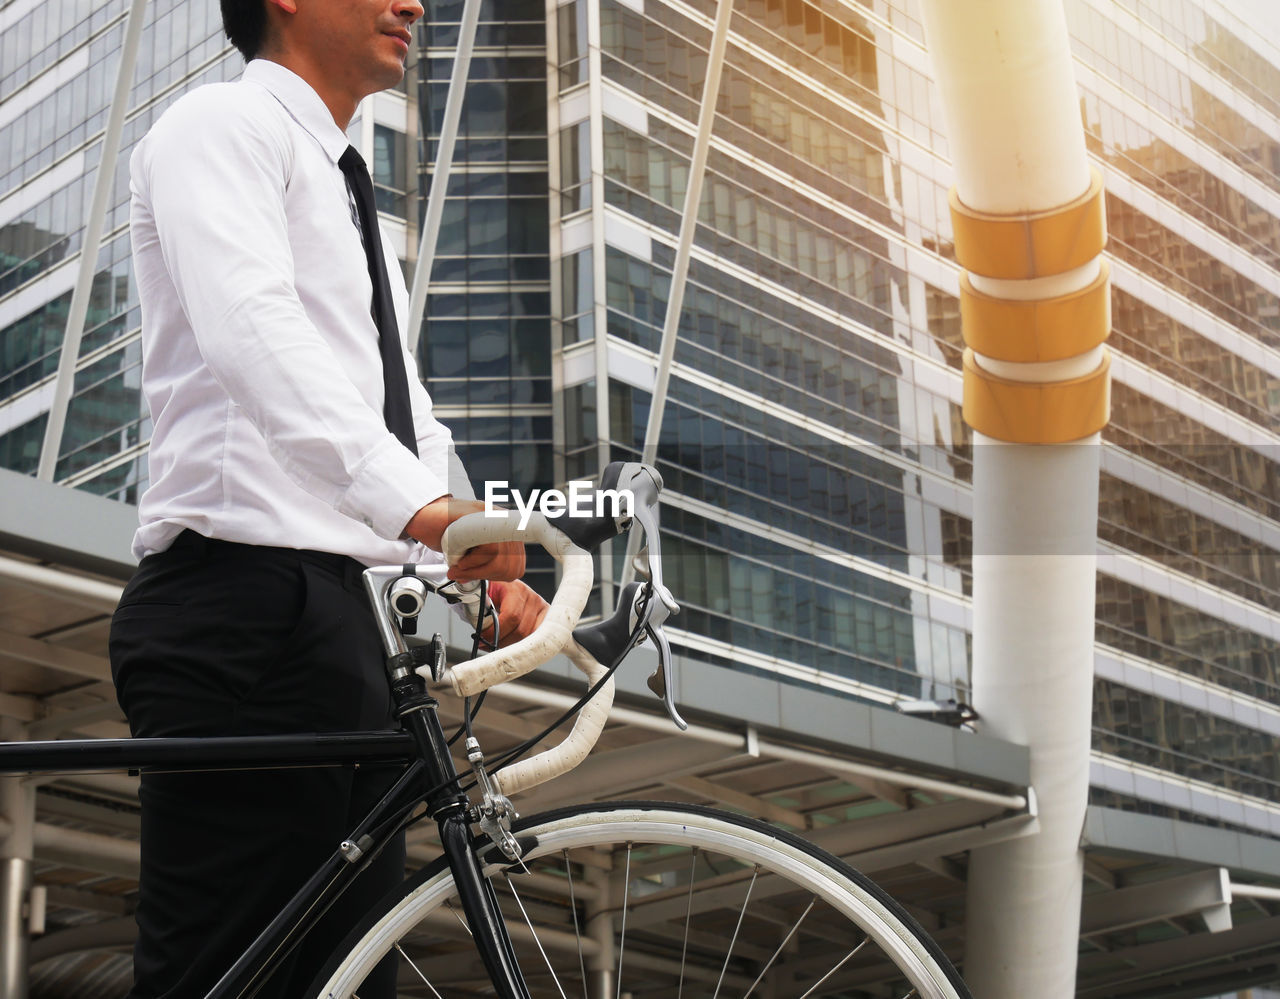 men, one person, real people, bicycle, midsection, transportation, mode of transportation, three quarter length, lifestyles, land vehicle, males, occupation, business, standing, clothing, holding, formalwear, ride, focus on foreground, riding